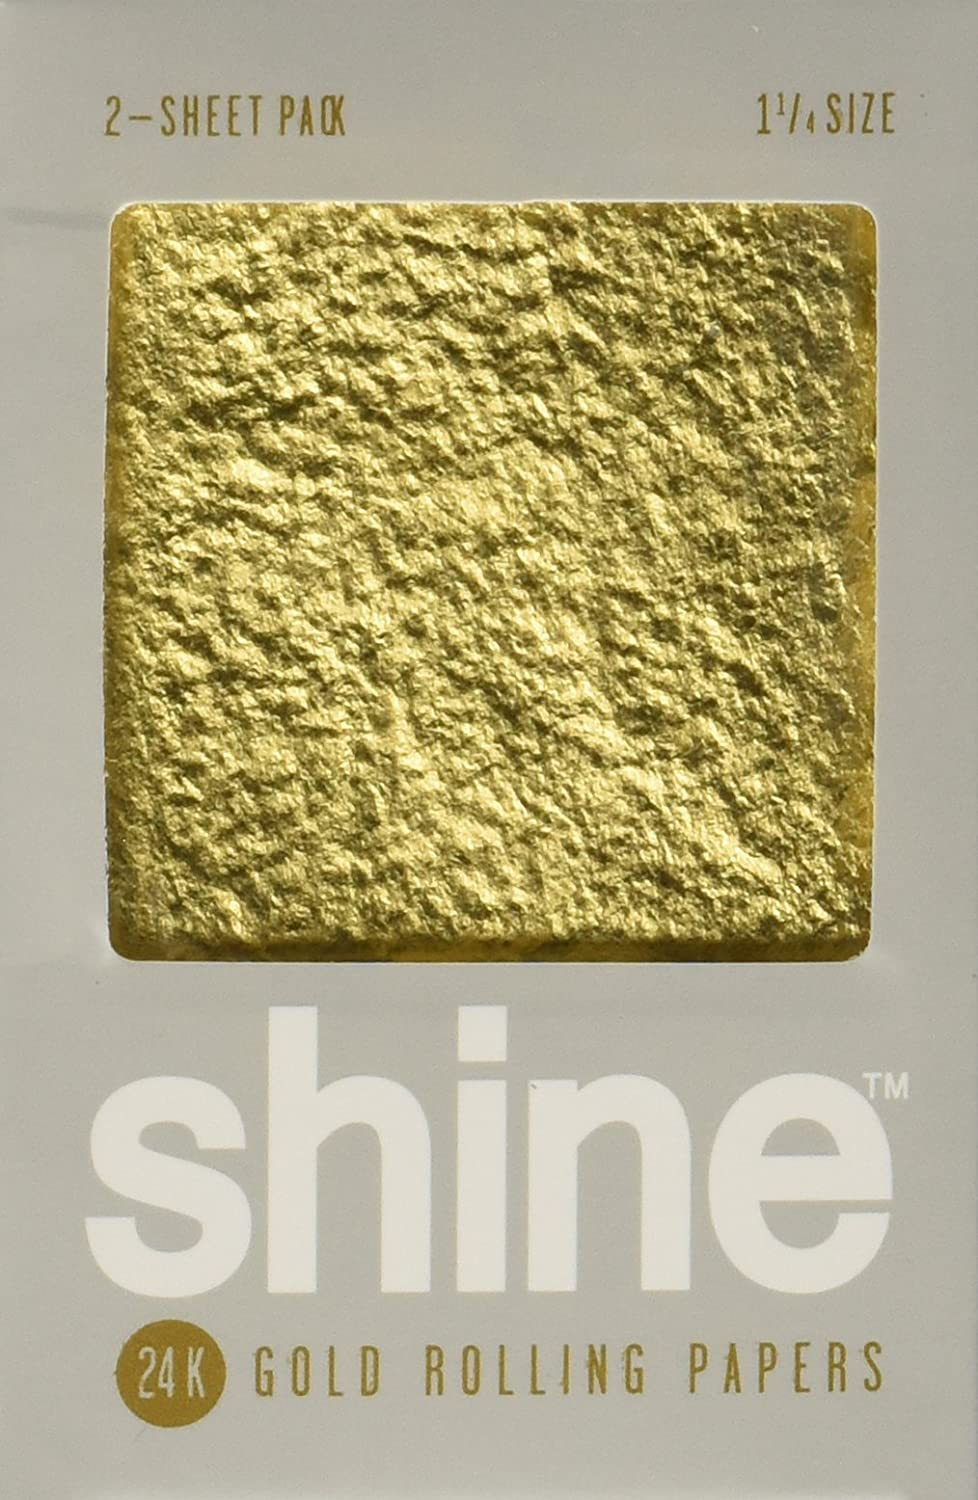 Shine Ranking integrated 1st place 24K Gold Rolling Sheet Pack Papers Clearance SALE! Limited time! 2